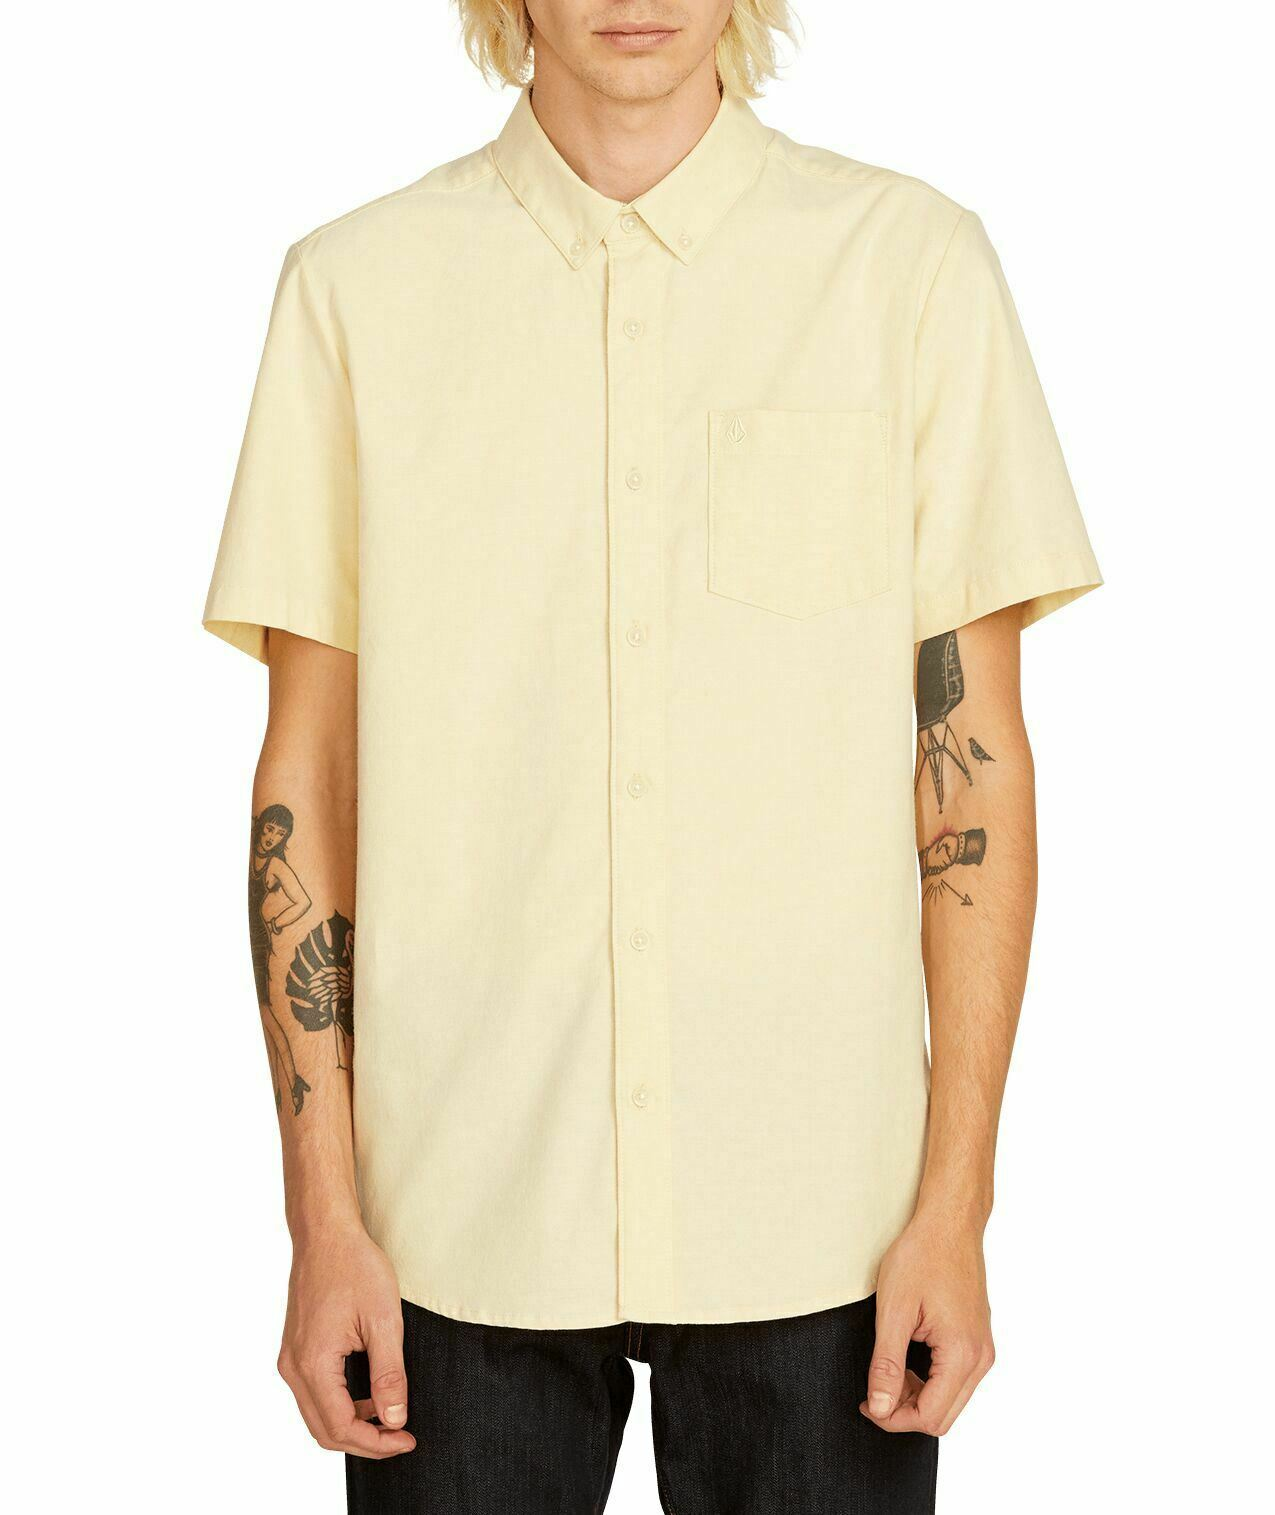 Volcom Men's Shirt  Everett Oxford yellow